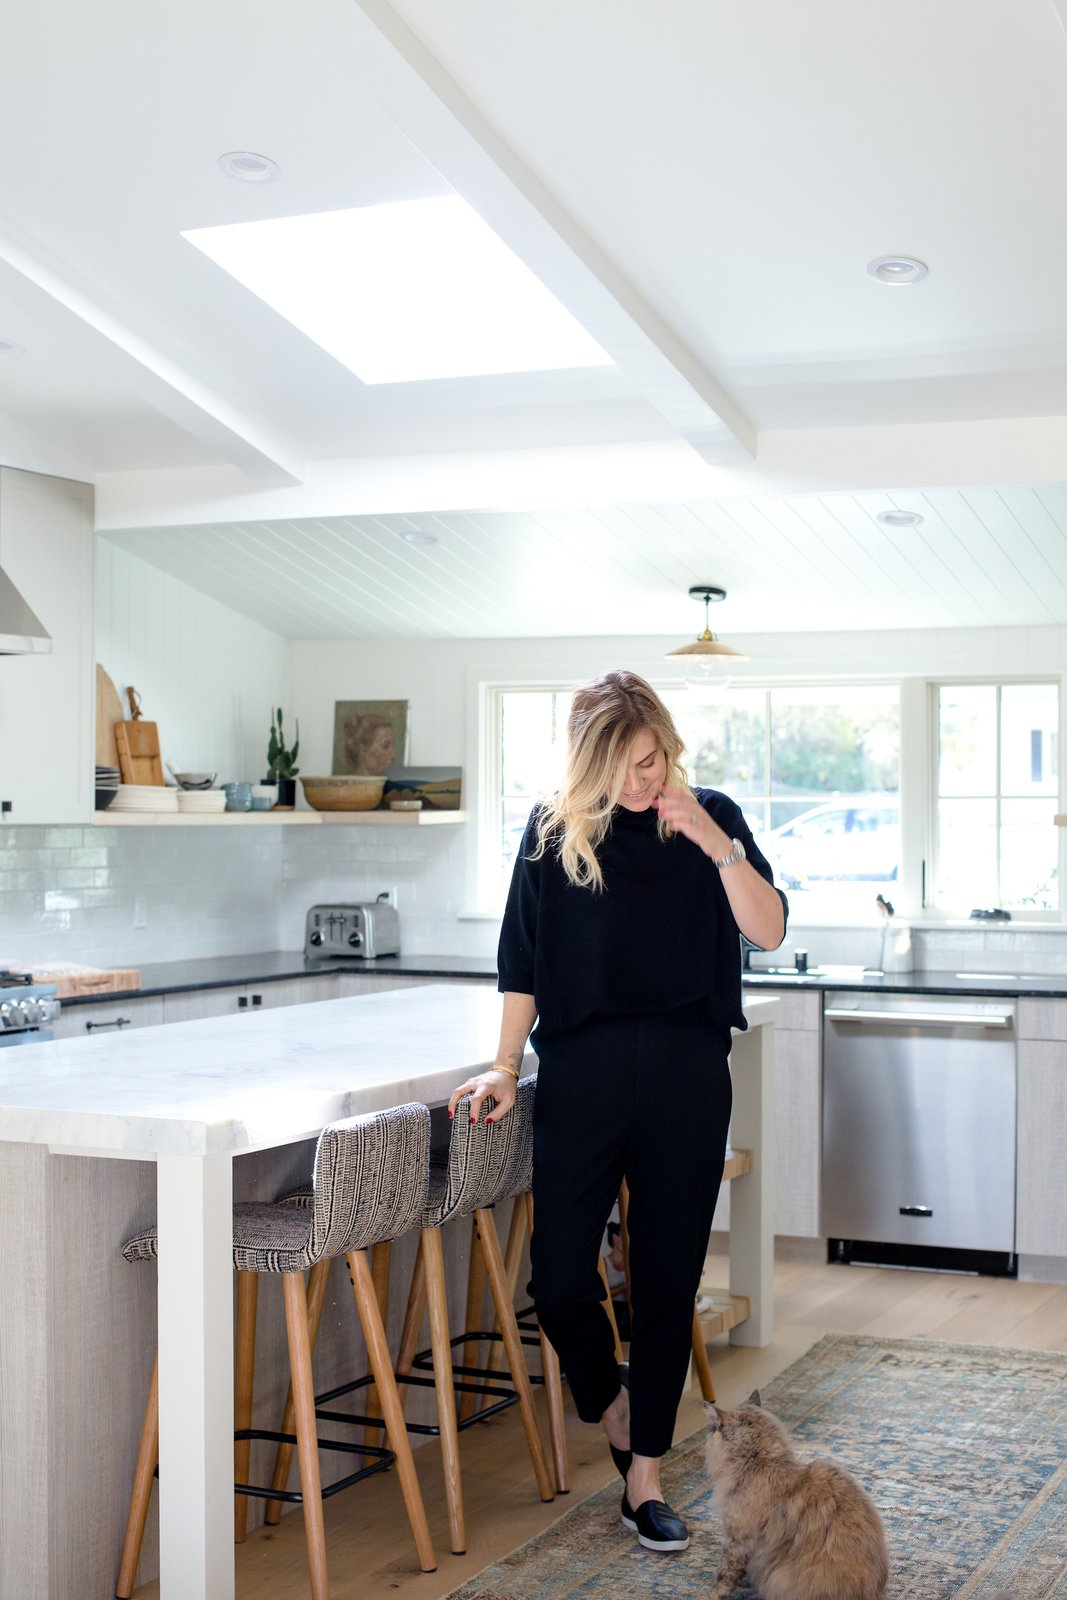 """The Big Reveal: An Interior Designer Unveils Her """"No Ordinary Kitchen"""" Makeover - Photo 9 of 9"""